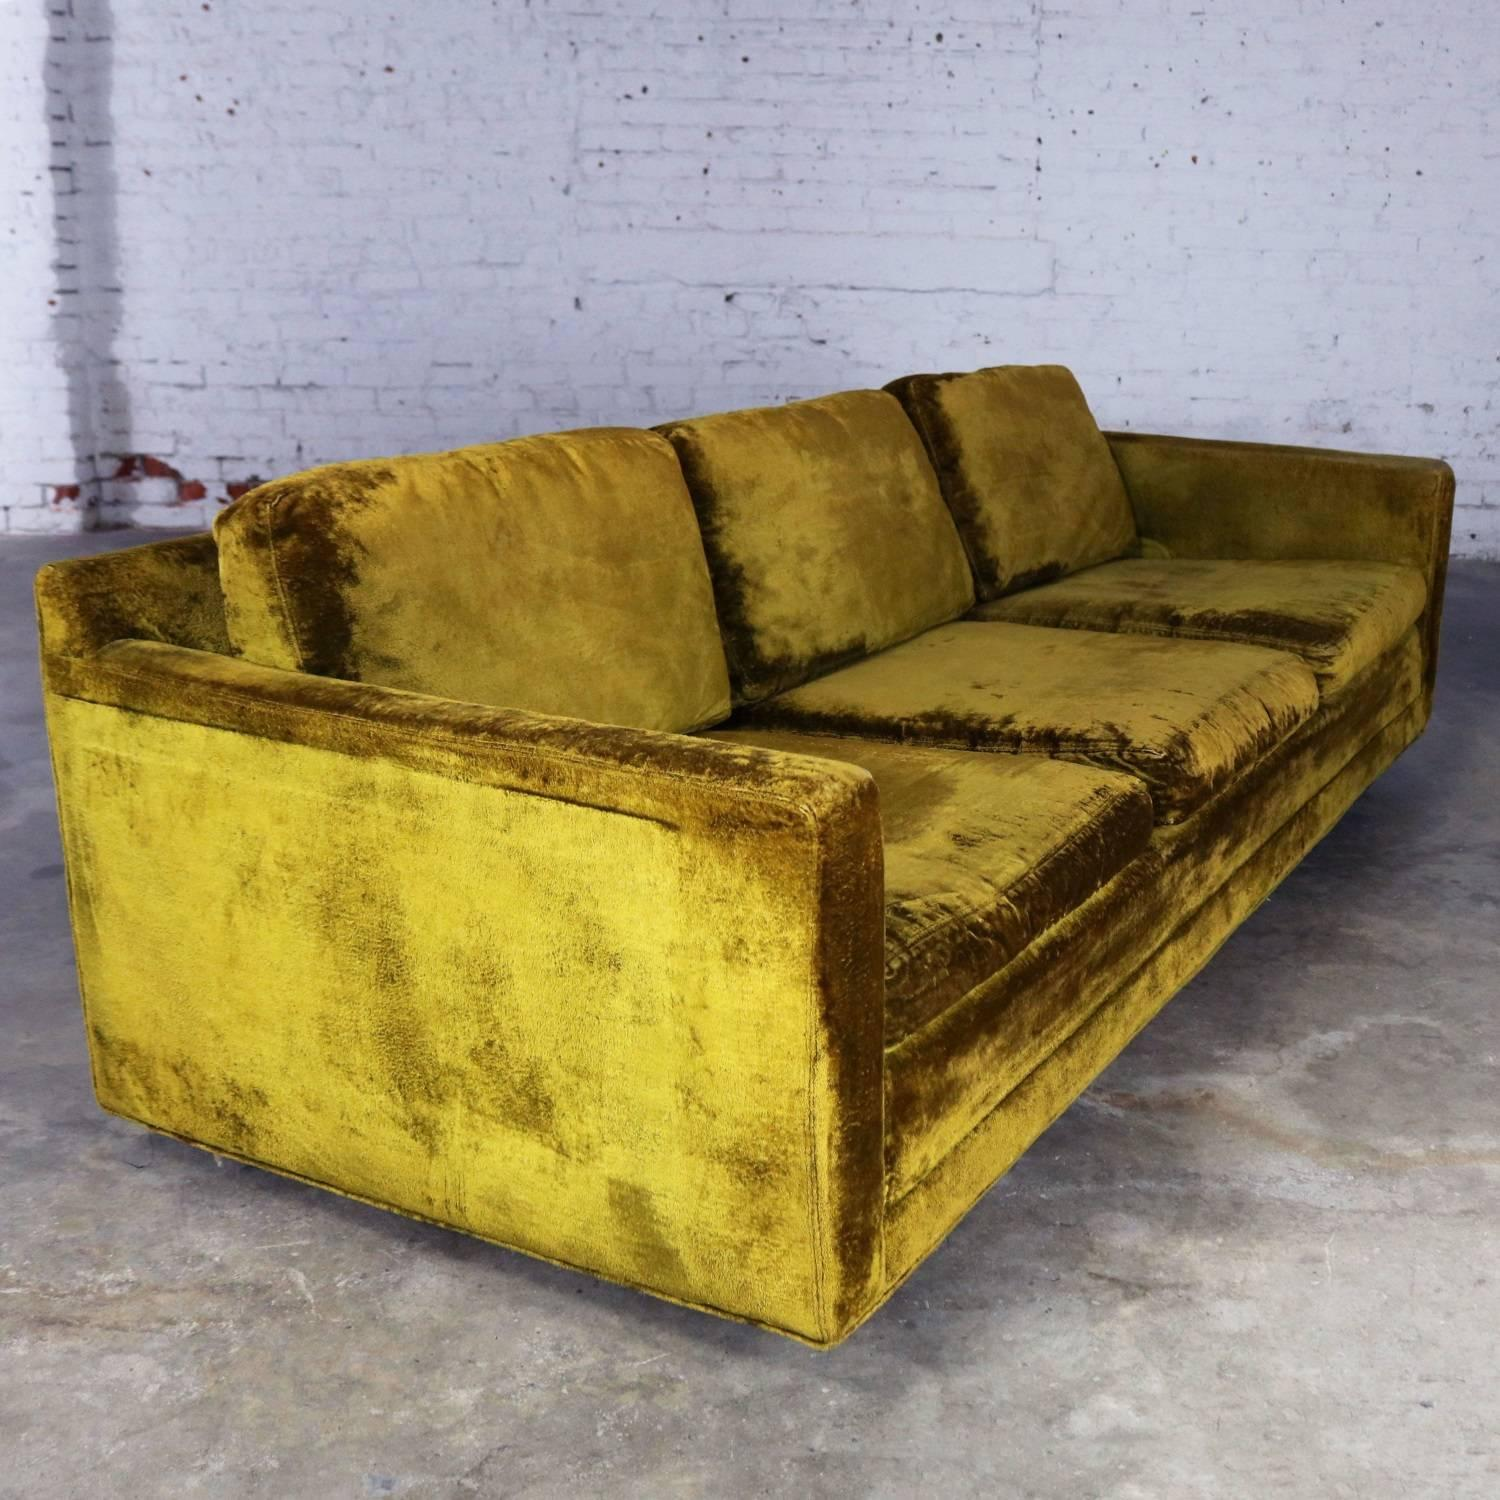 Slender And Simple Lawson Style Three Cushion Sofa In Green Velvet  Upholstery. This Vintage